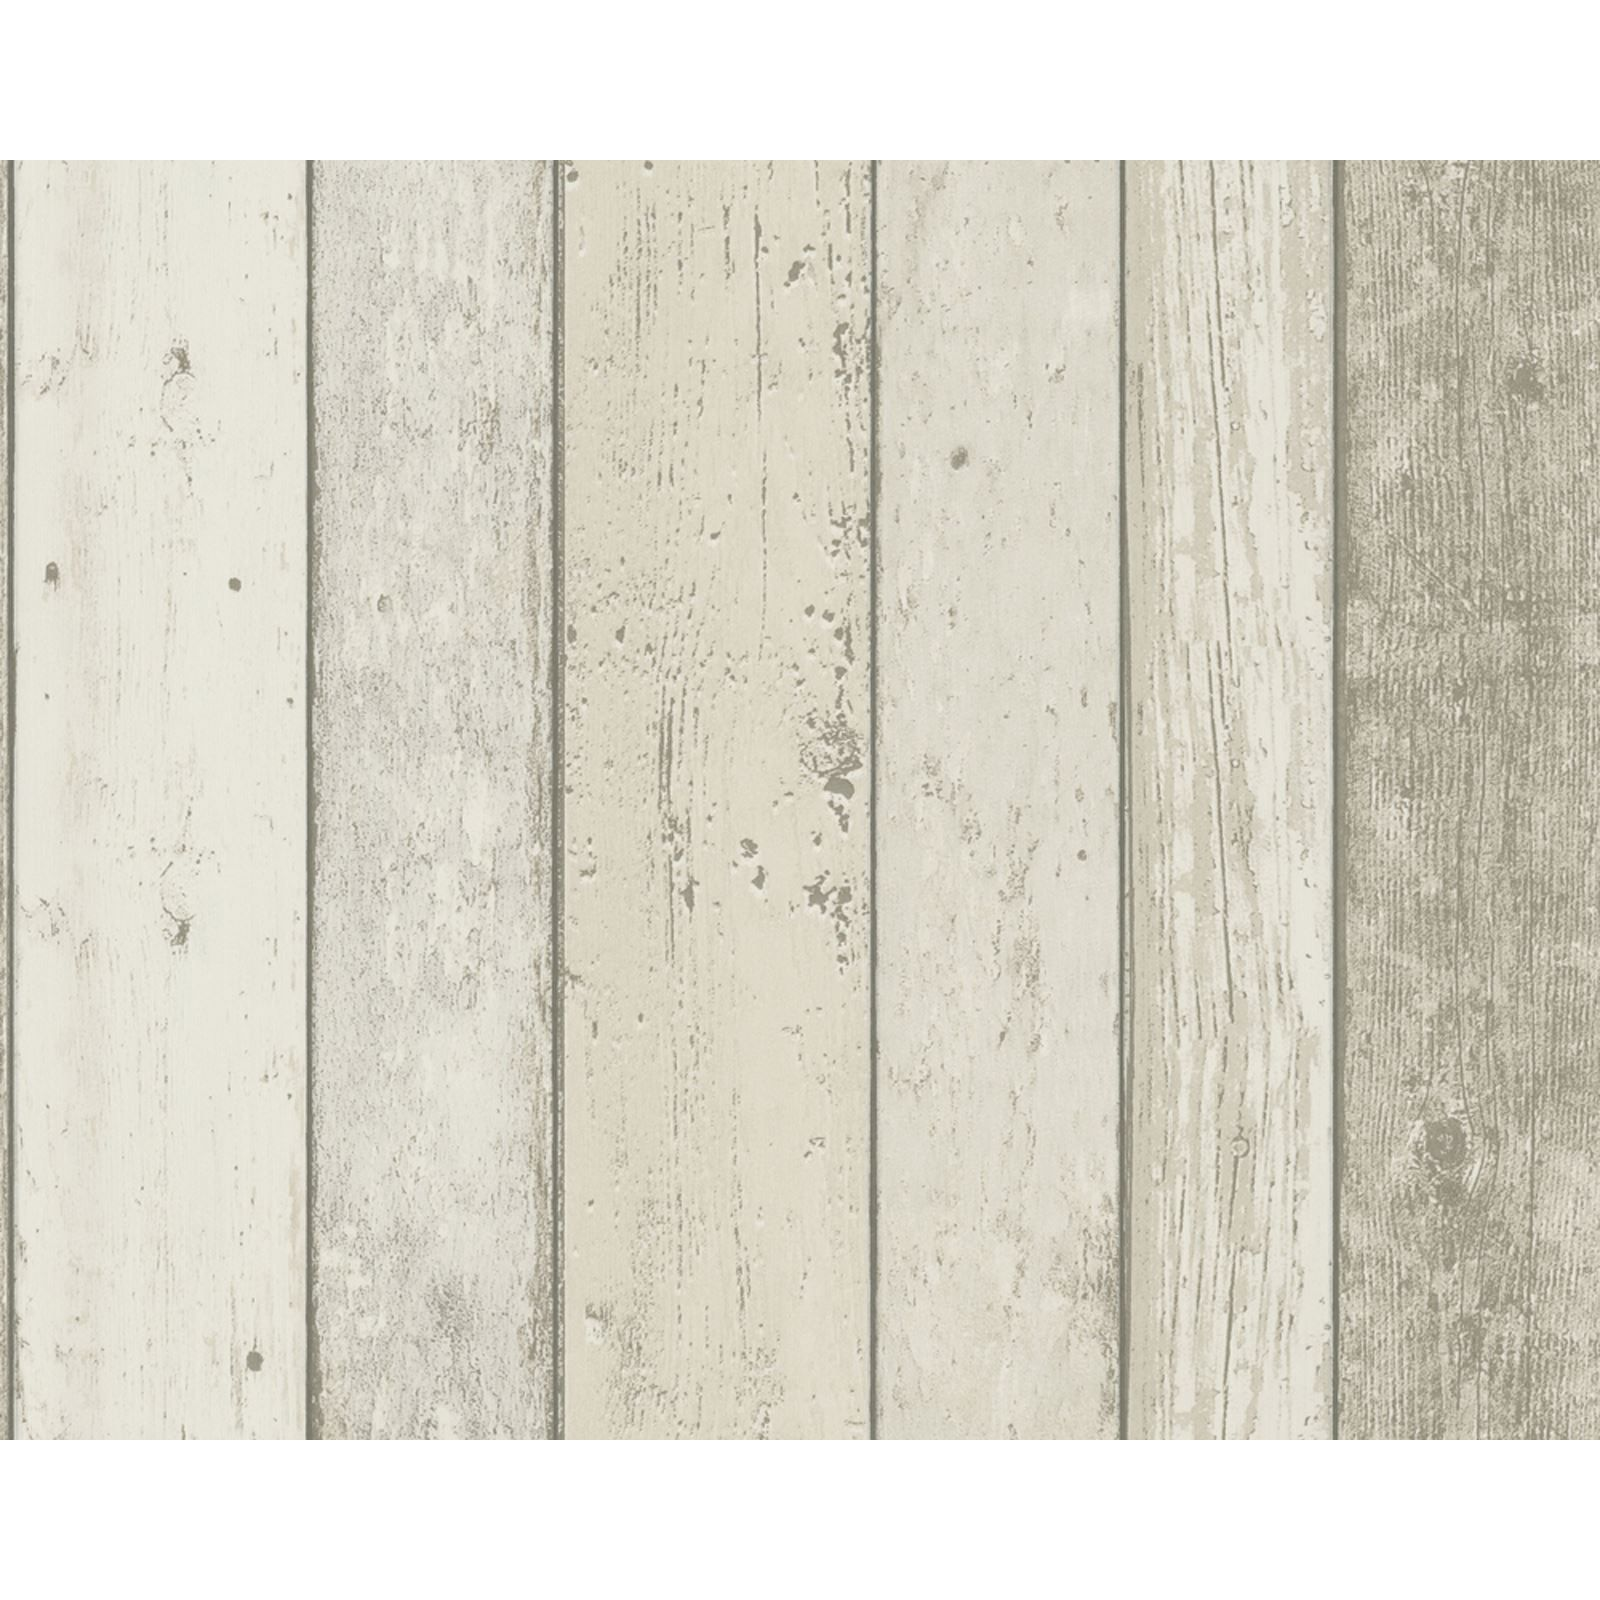 Details About New England Natural Wood Effect Wallpaper Wood